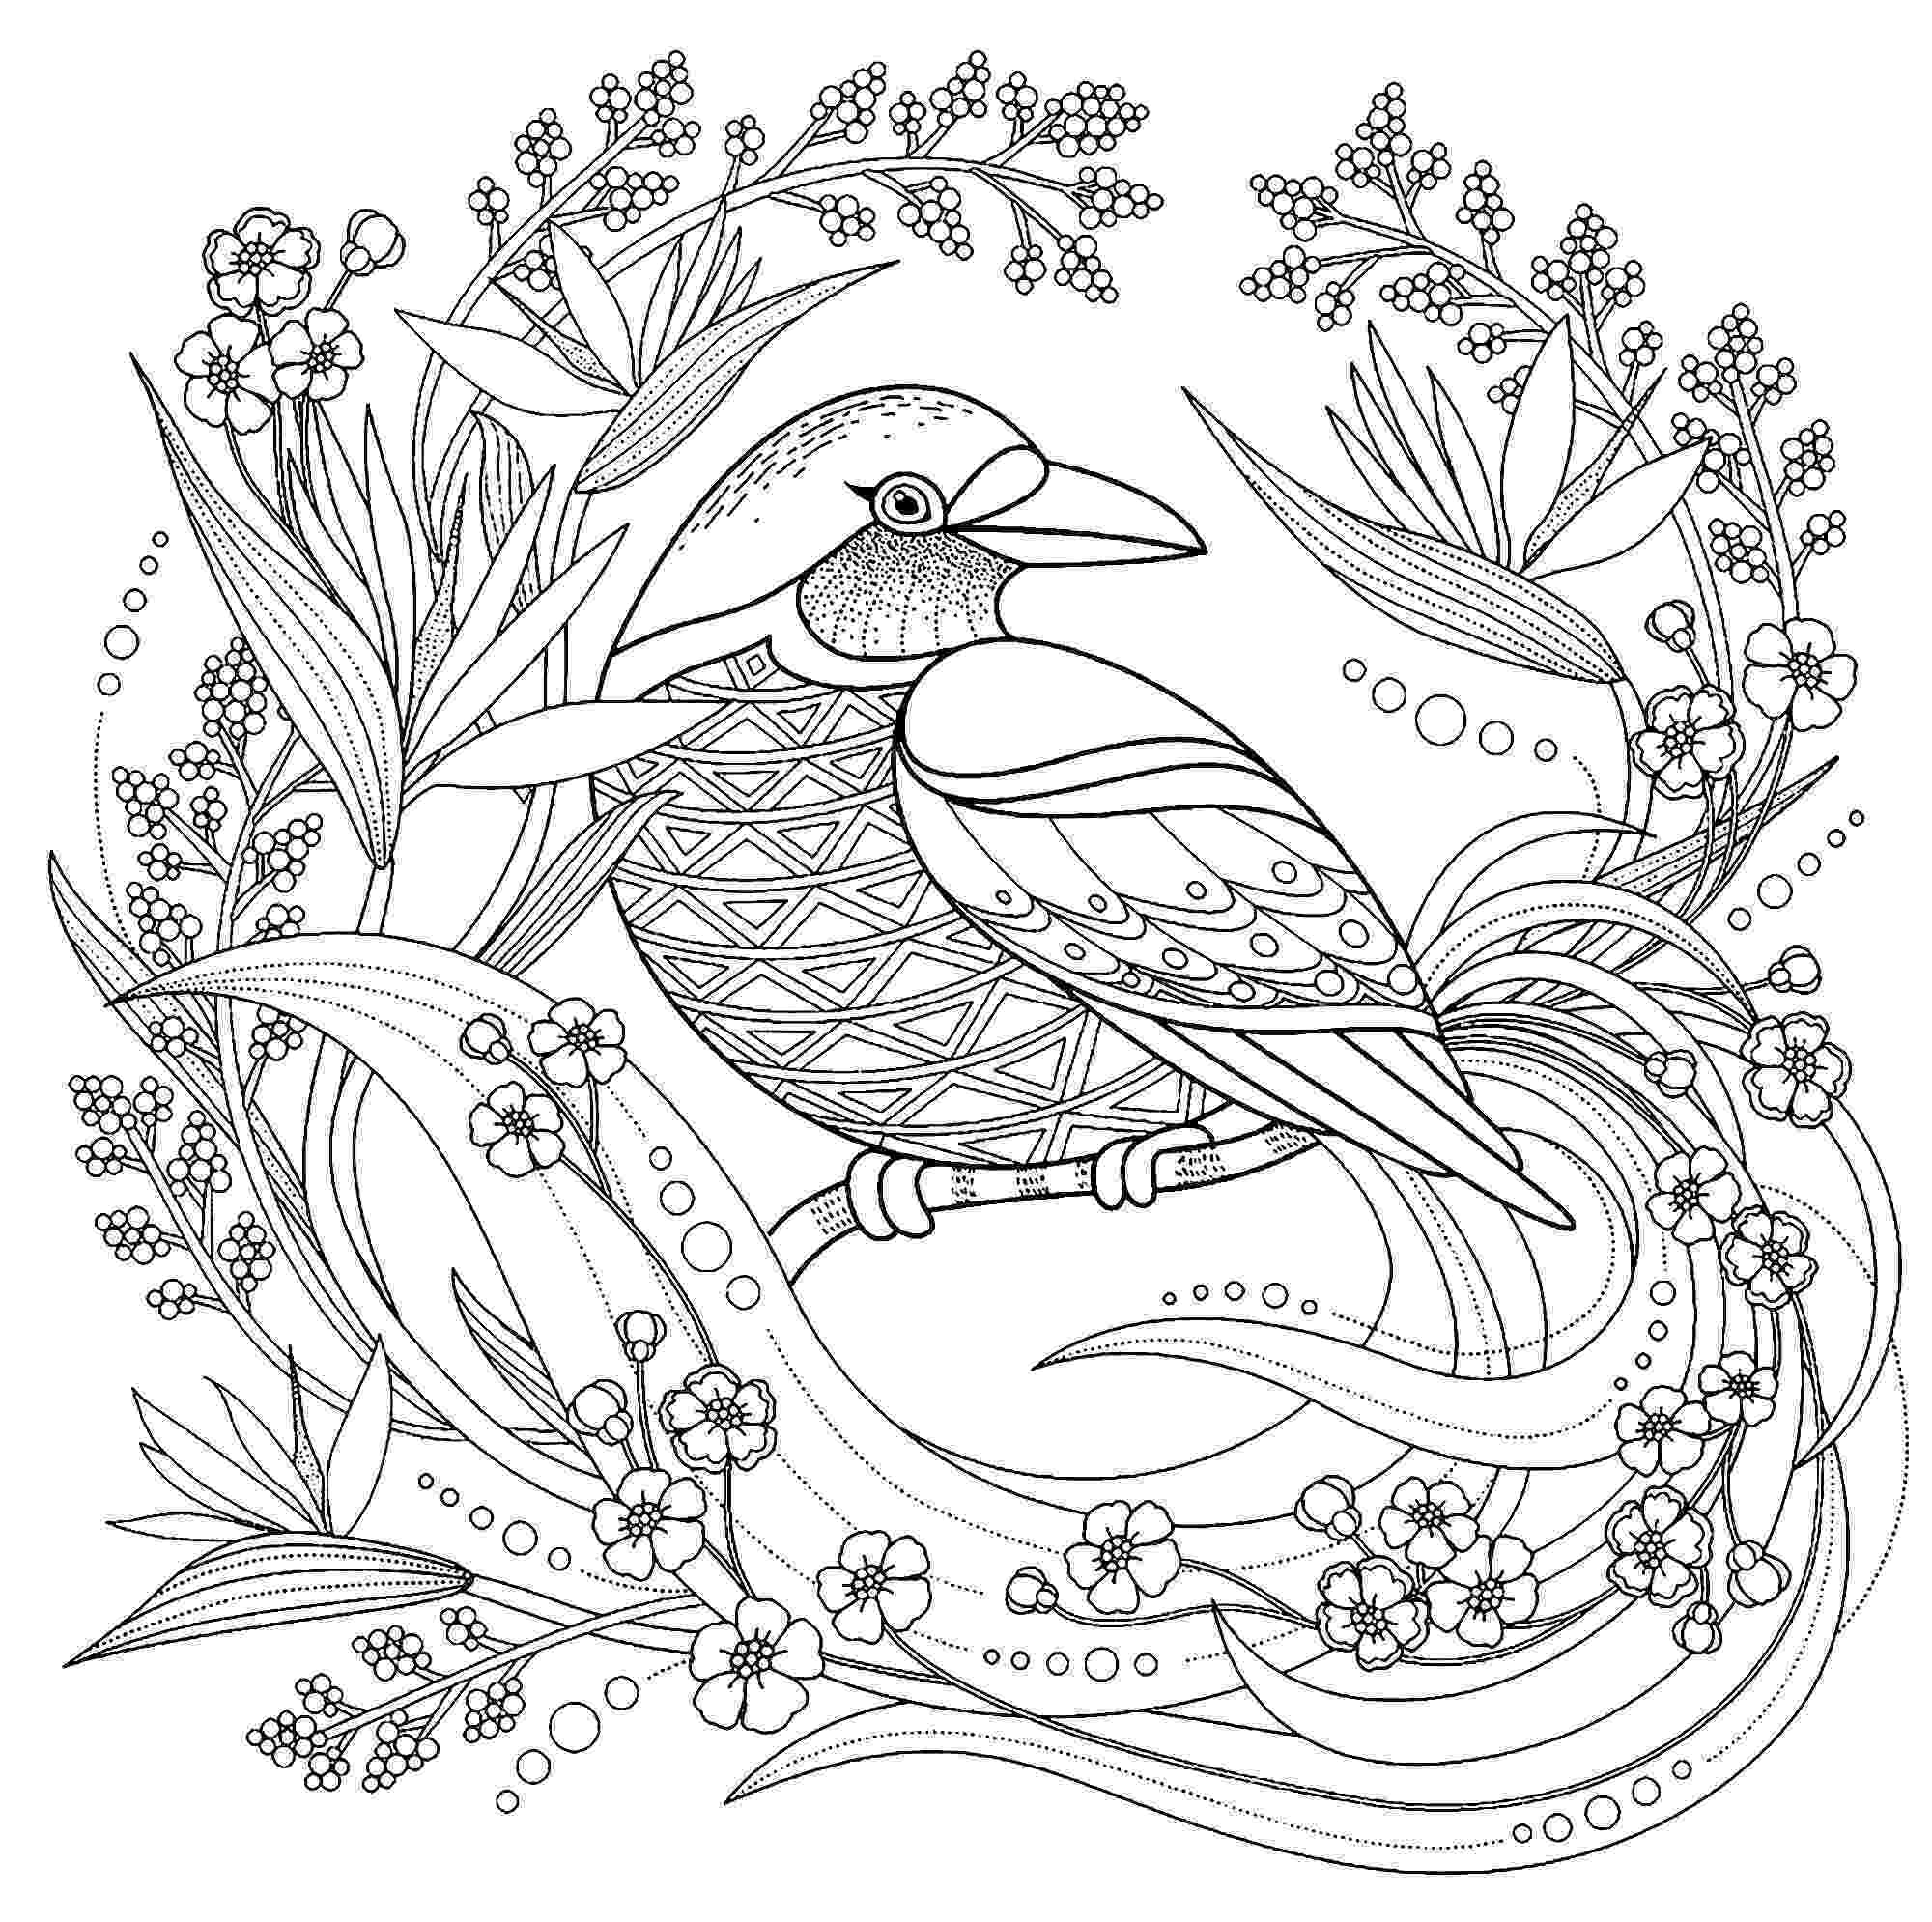 coloring book birds pictures line art coloring page bird with blossoms the book pictures coloring birds